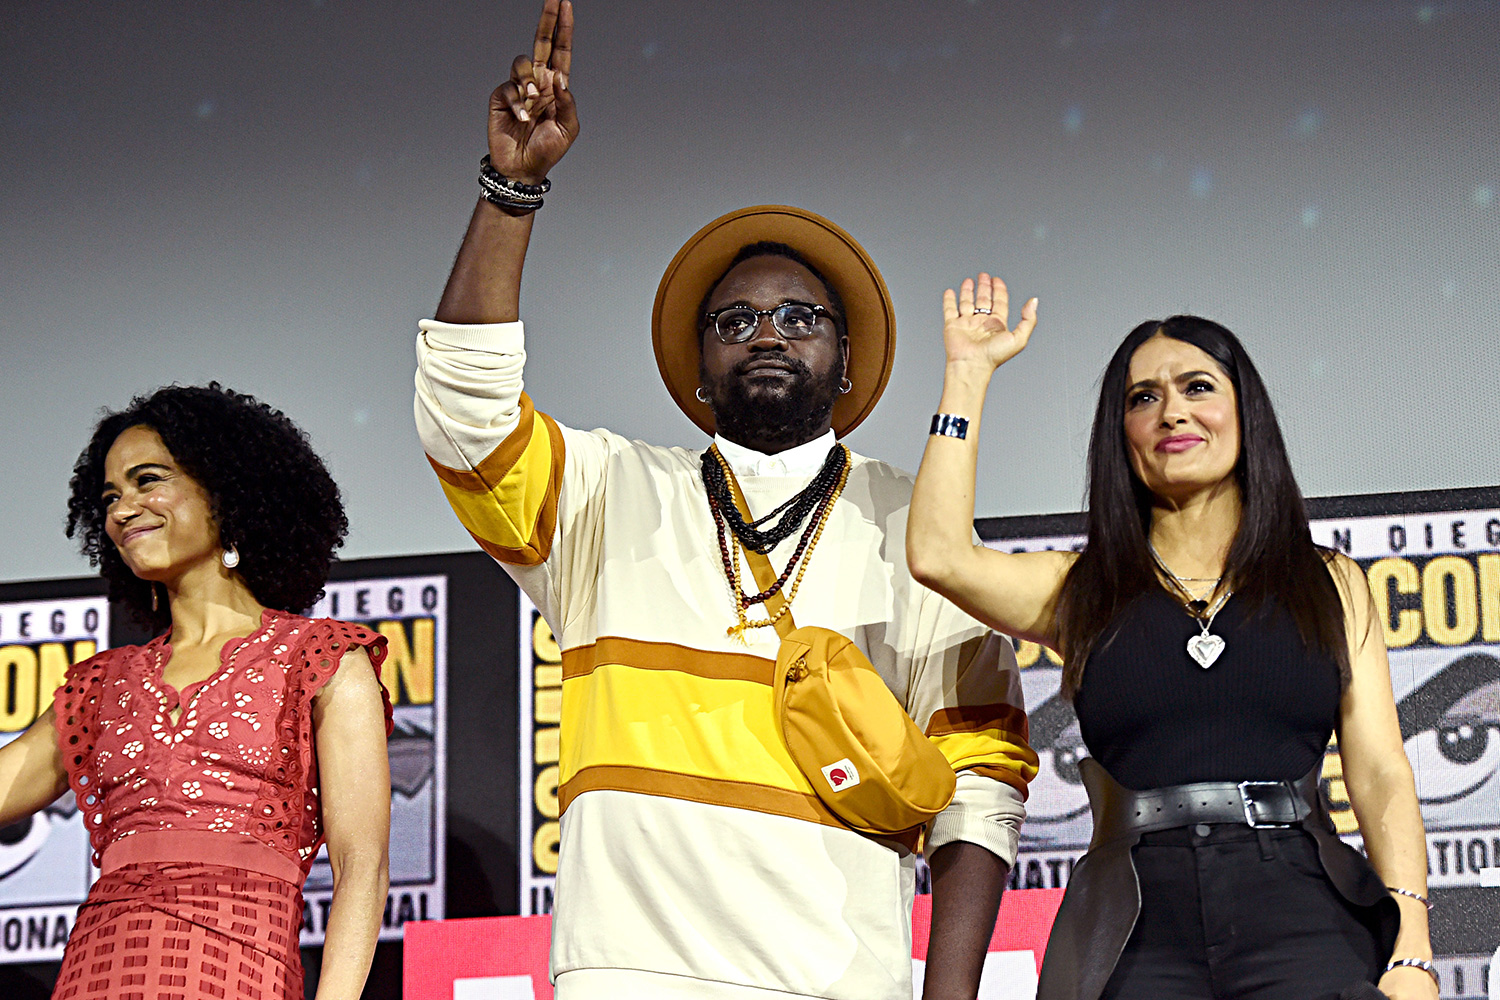 Lauren Ridloff, Brian Tyree Henry and Salma Hayek of Marvel Studios' 'The Eternals' at the San Diego Comic-Con International 2019 Marvel Studios Panel in Hall H on July 20, 2019 in San Diego, California